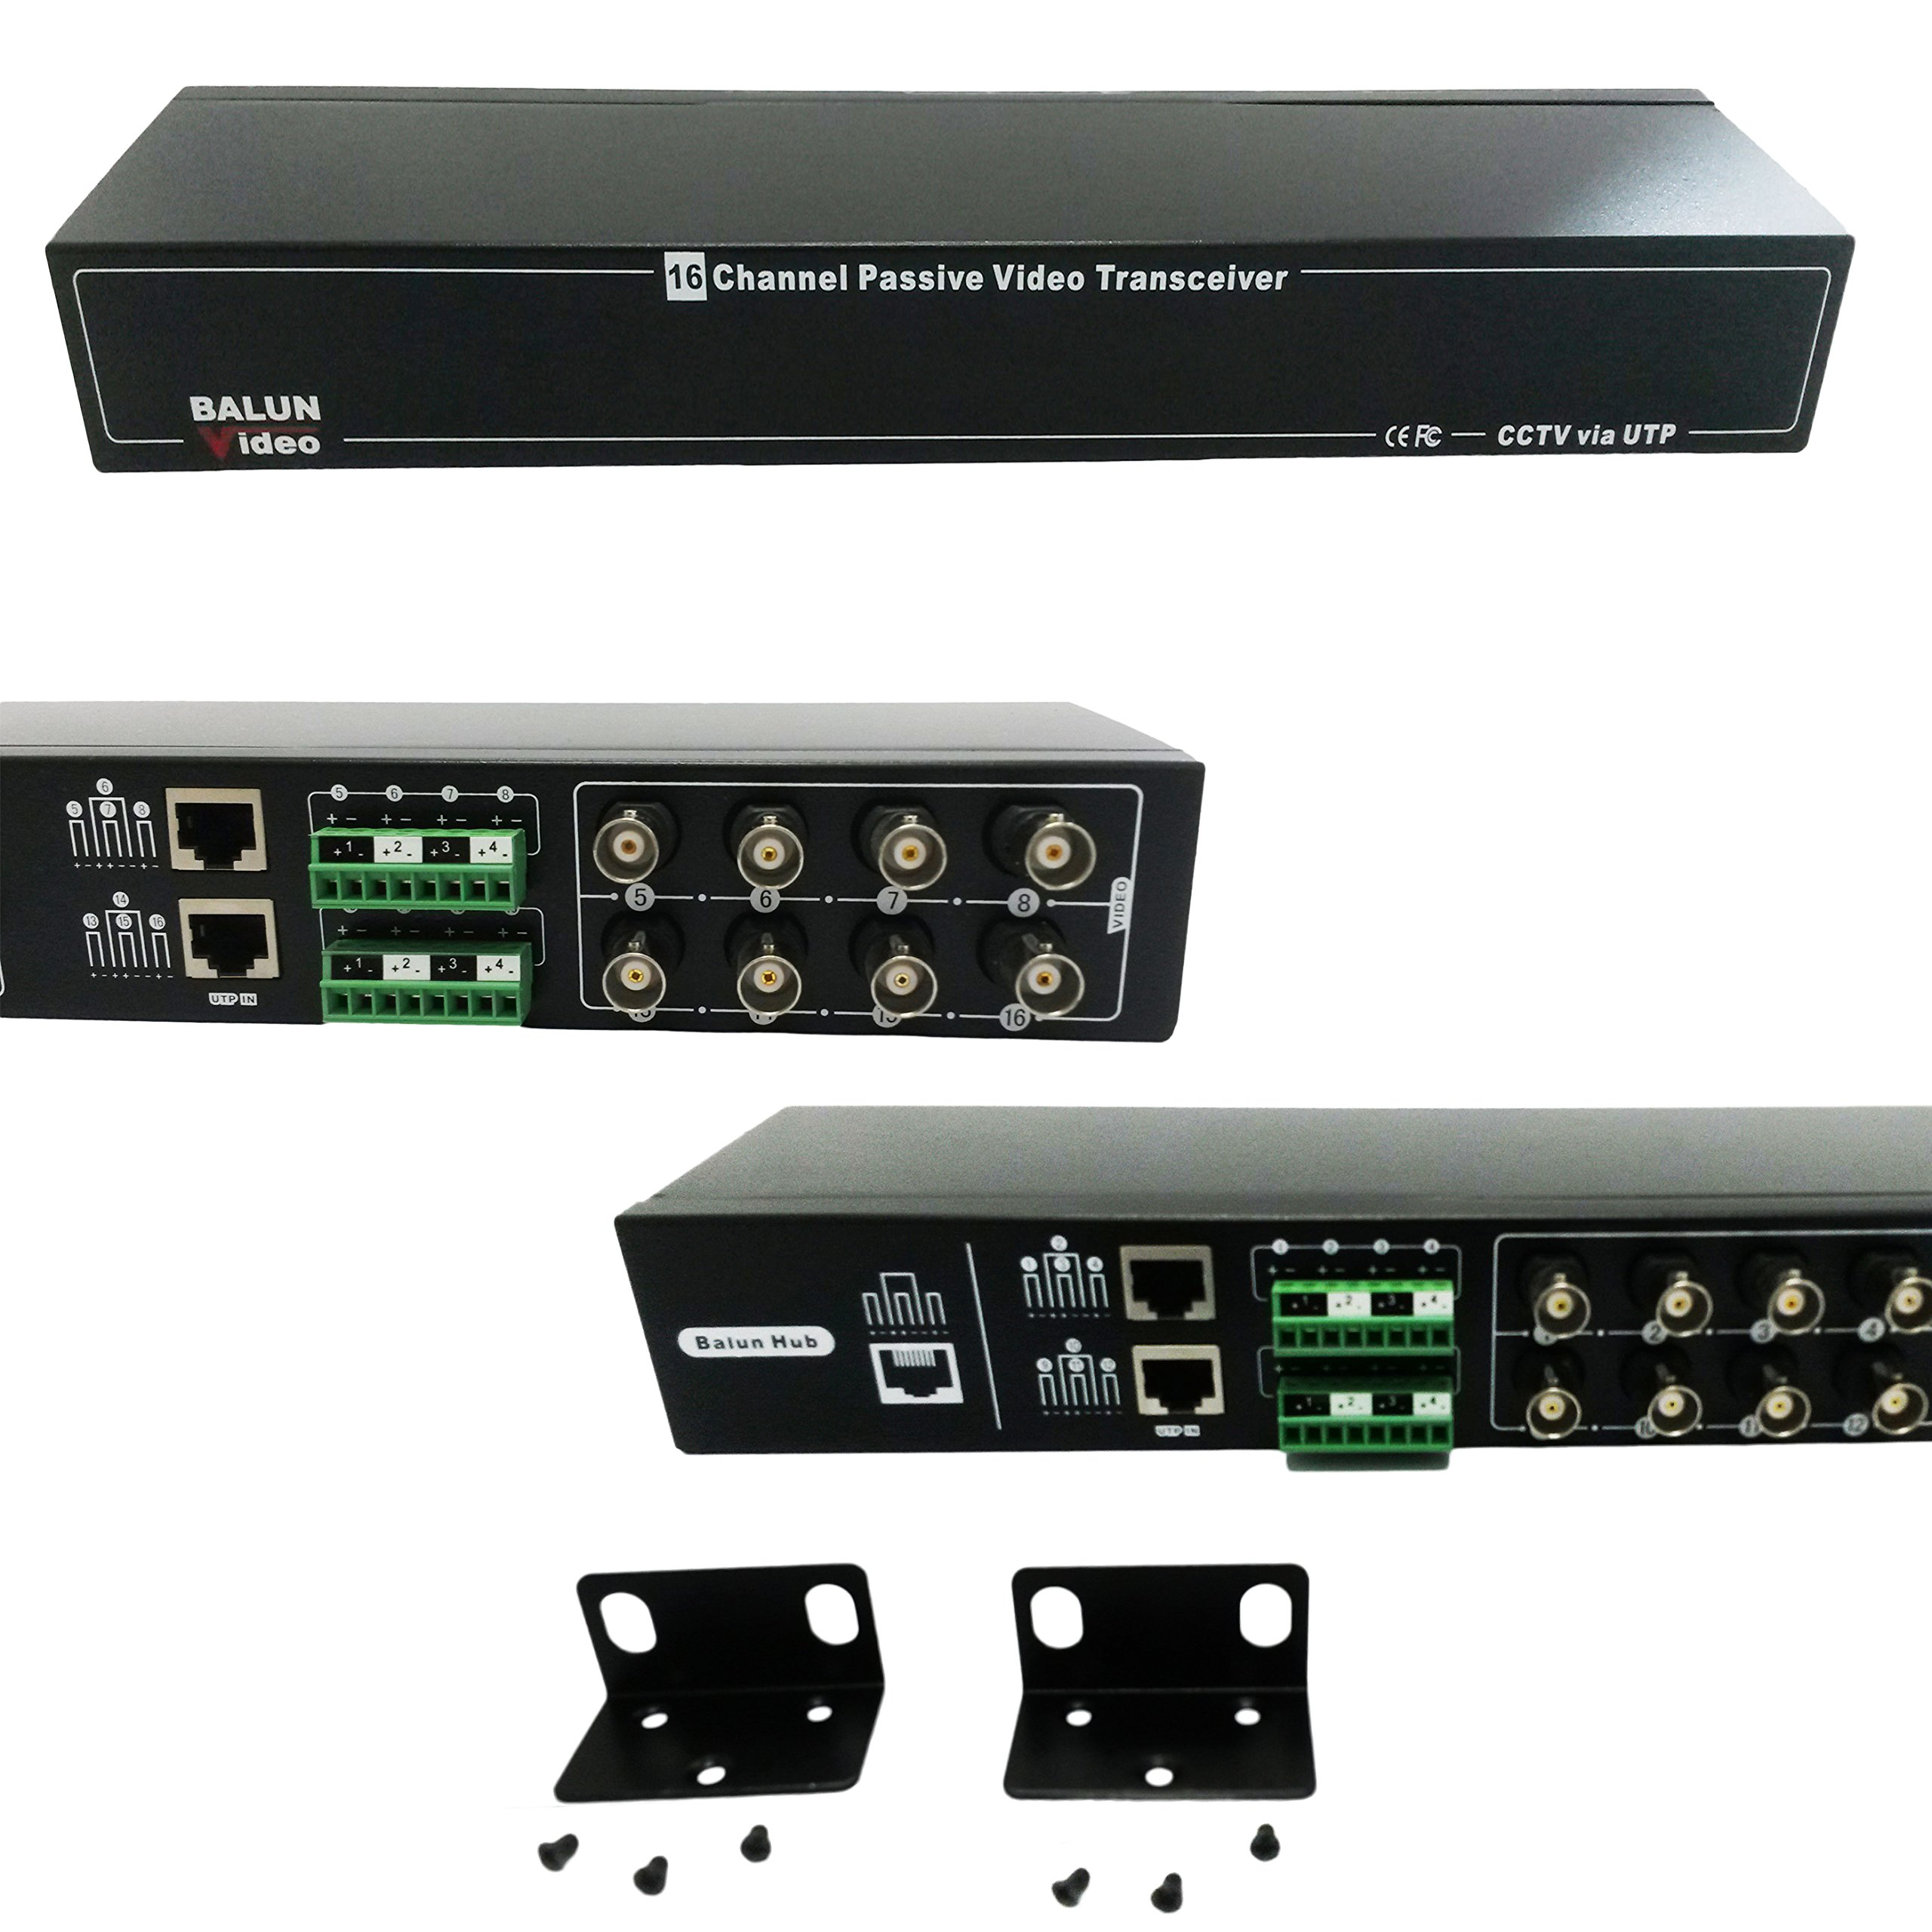 VENTECH CCTV 16ch Video Balun 16 Channel Pasive Transceiver RJ45 Accessories by VENTECH